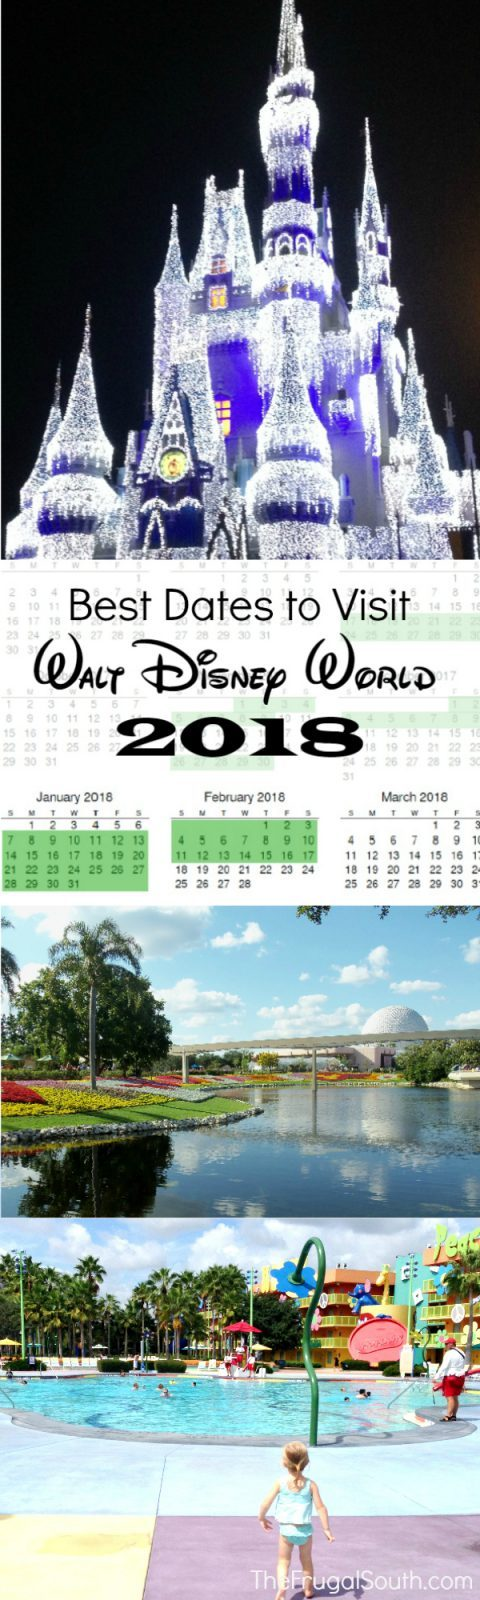 """Disney Magic Your Way Package at Disney World If you've anxiously been waiting to book your Walt Disney World """"Magic Your Way"""" package, the wait is over! Disney has released its Resort Package Rates and that means you get the pick of the litter for resort rooms and more!"""